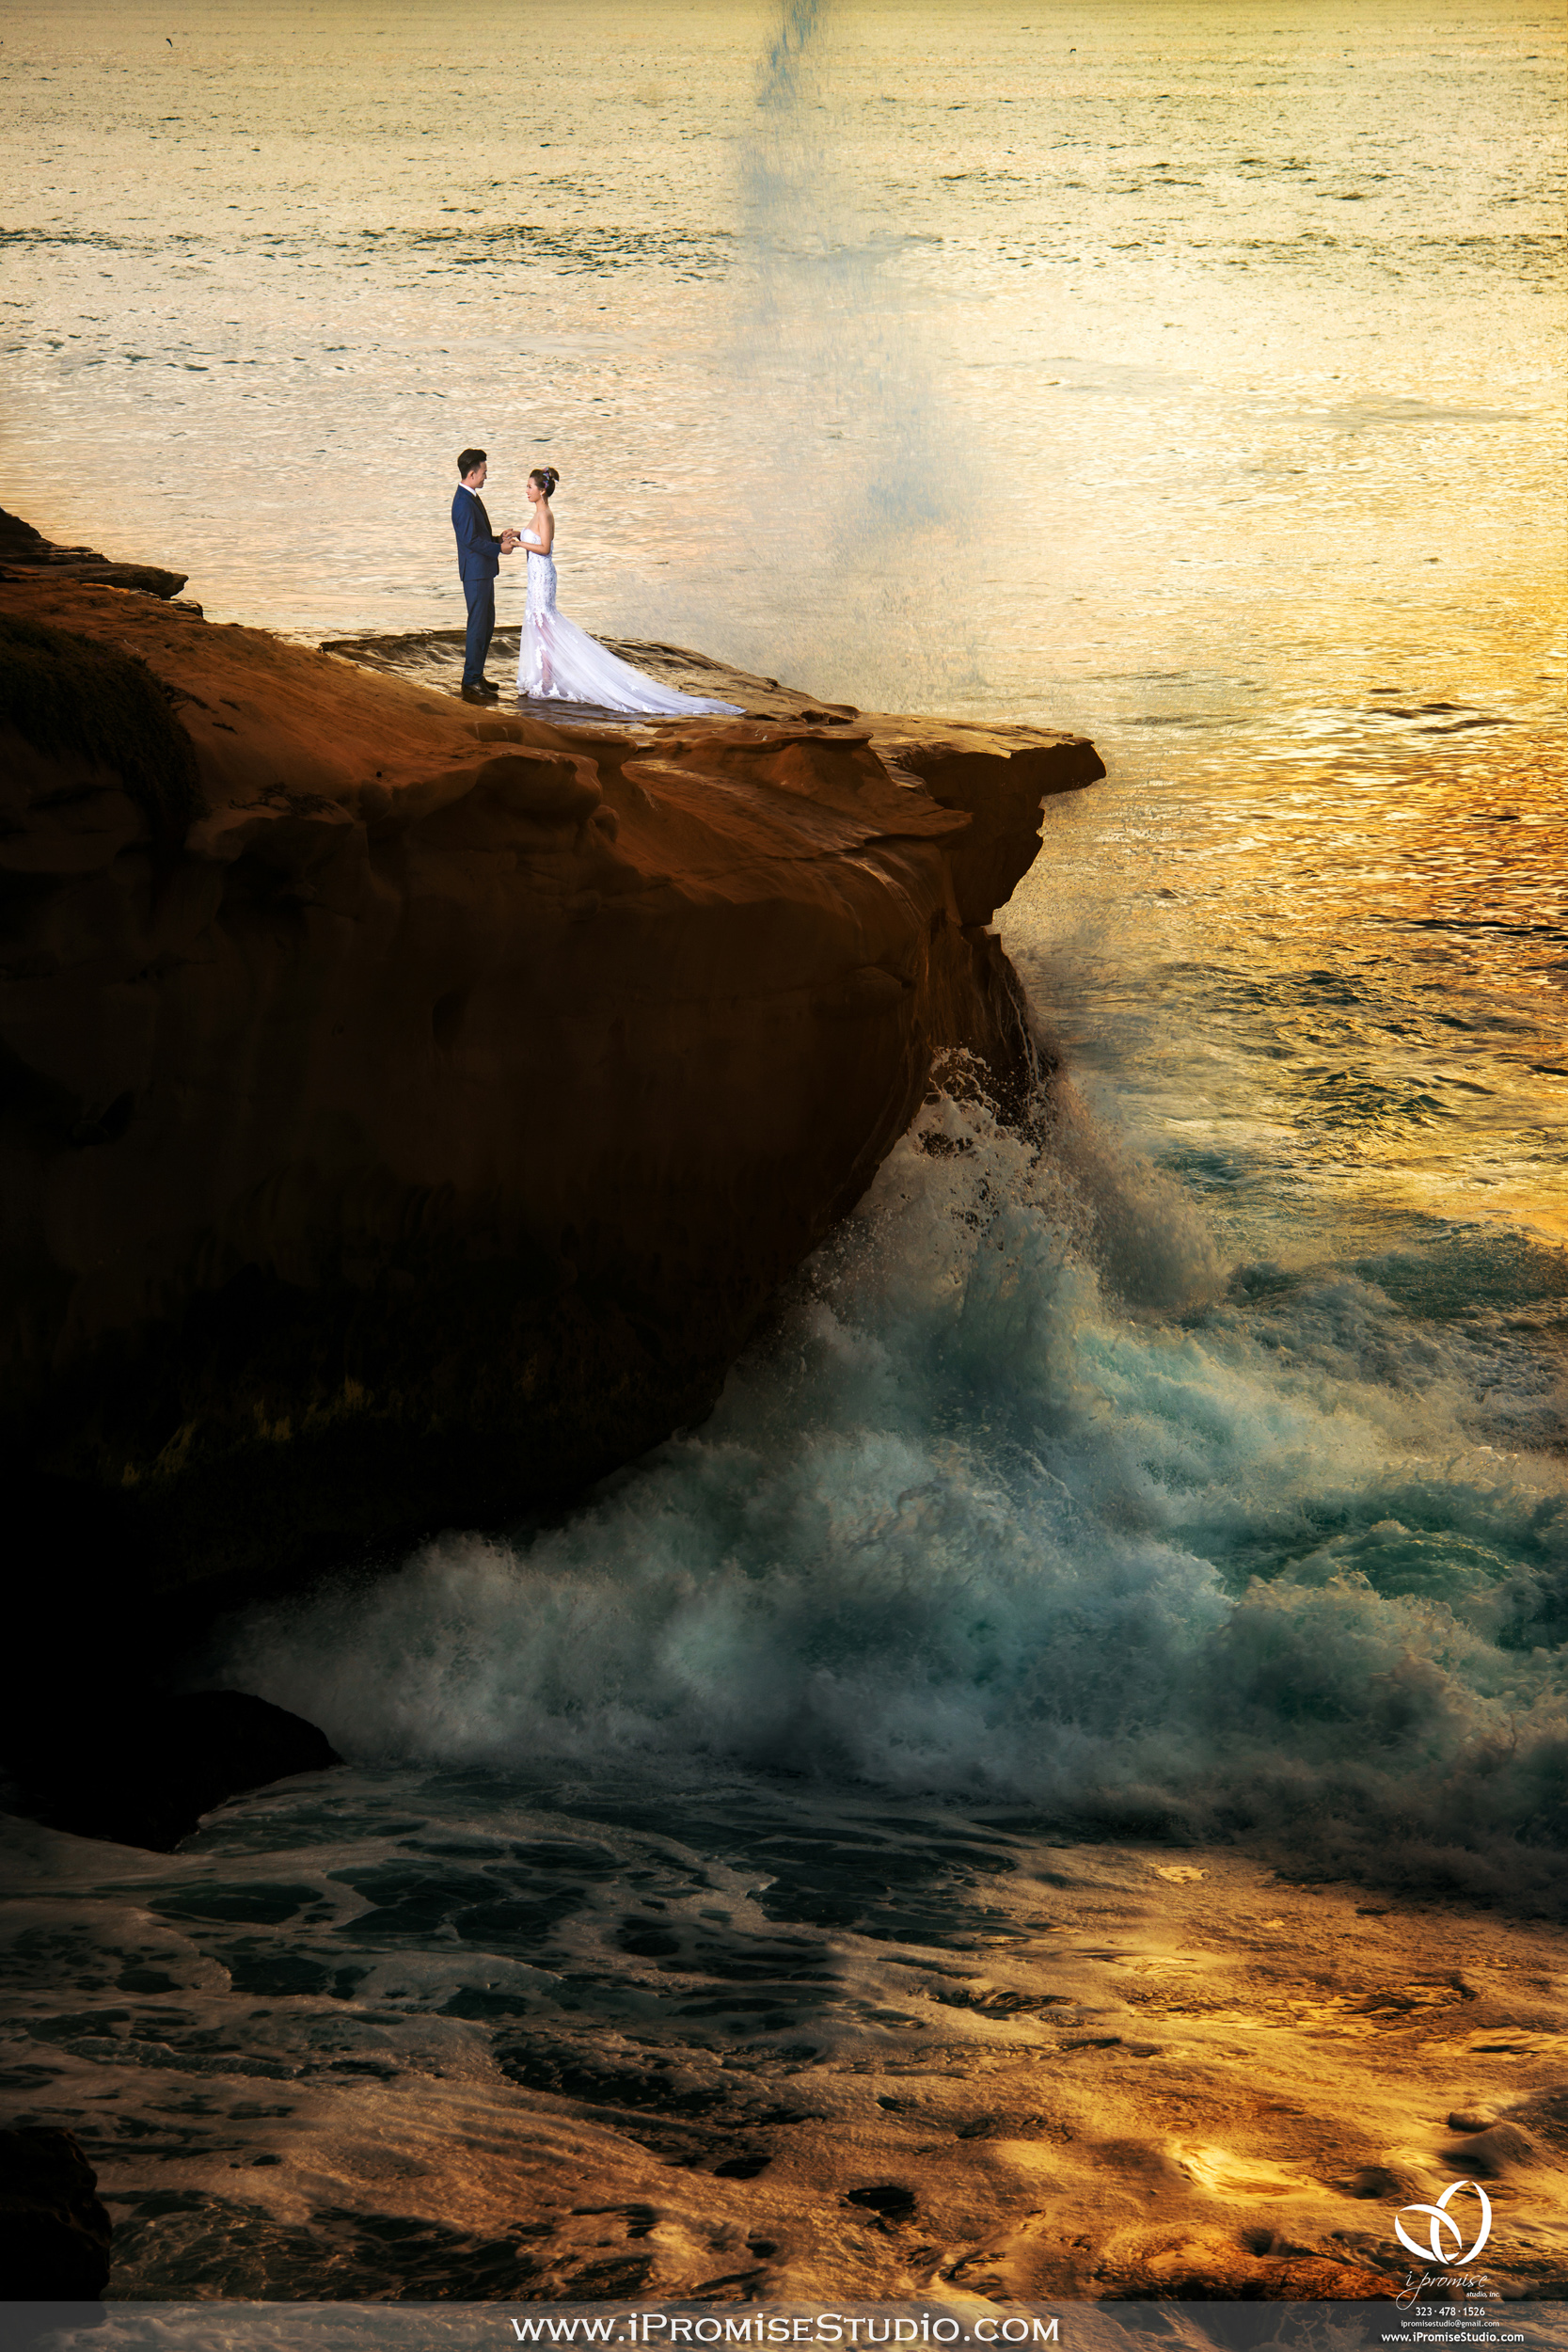 SanDiego La Jolla beach-engagement wedding 03.JPG